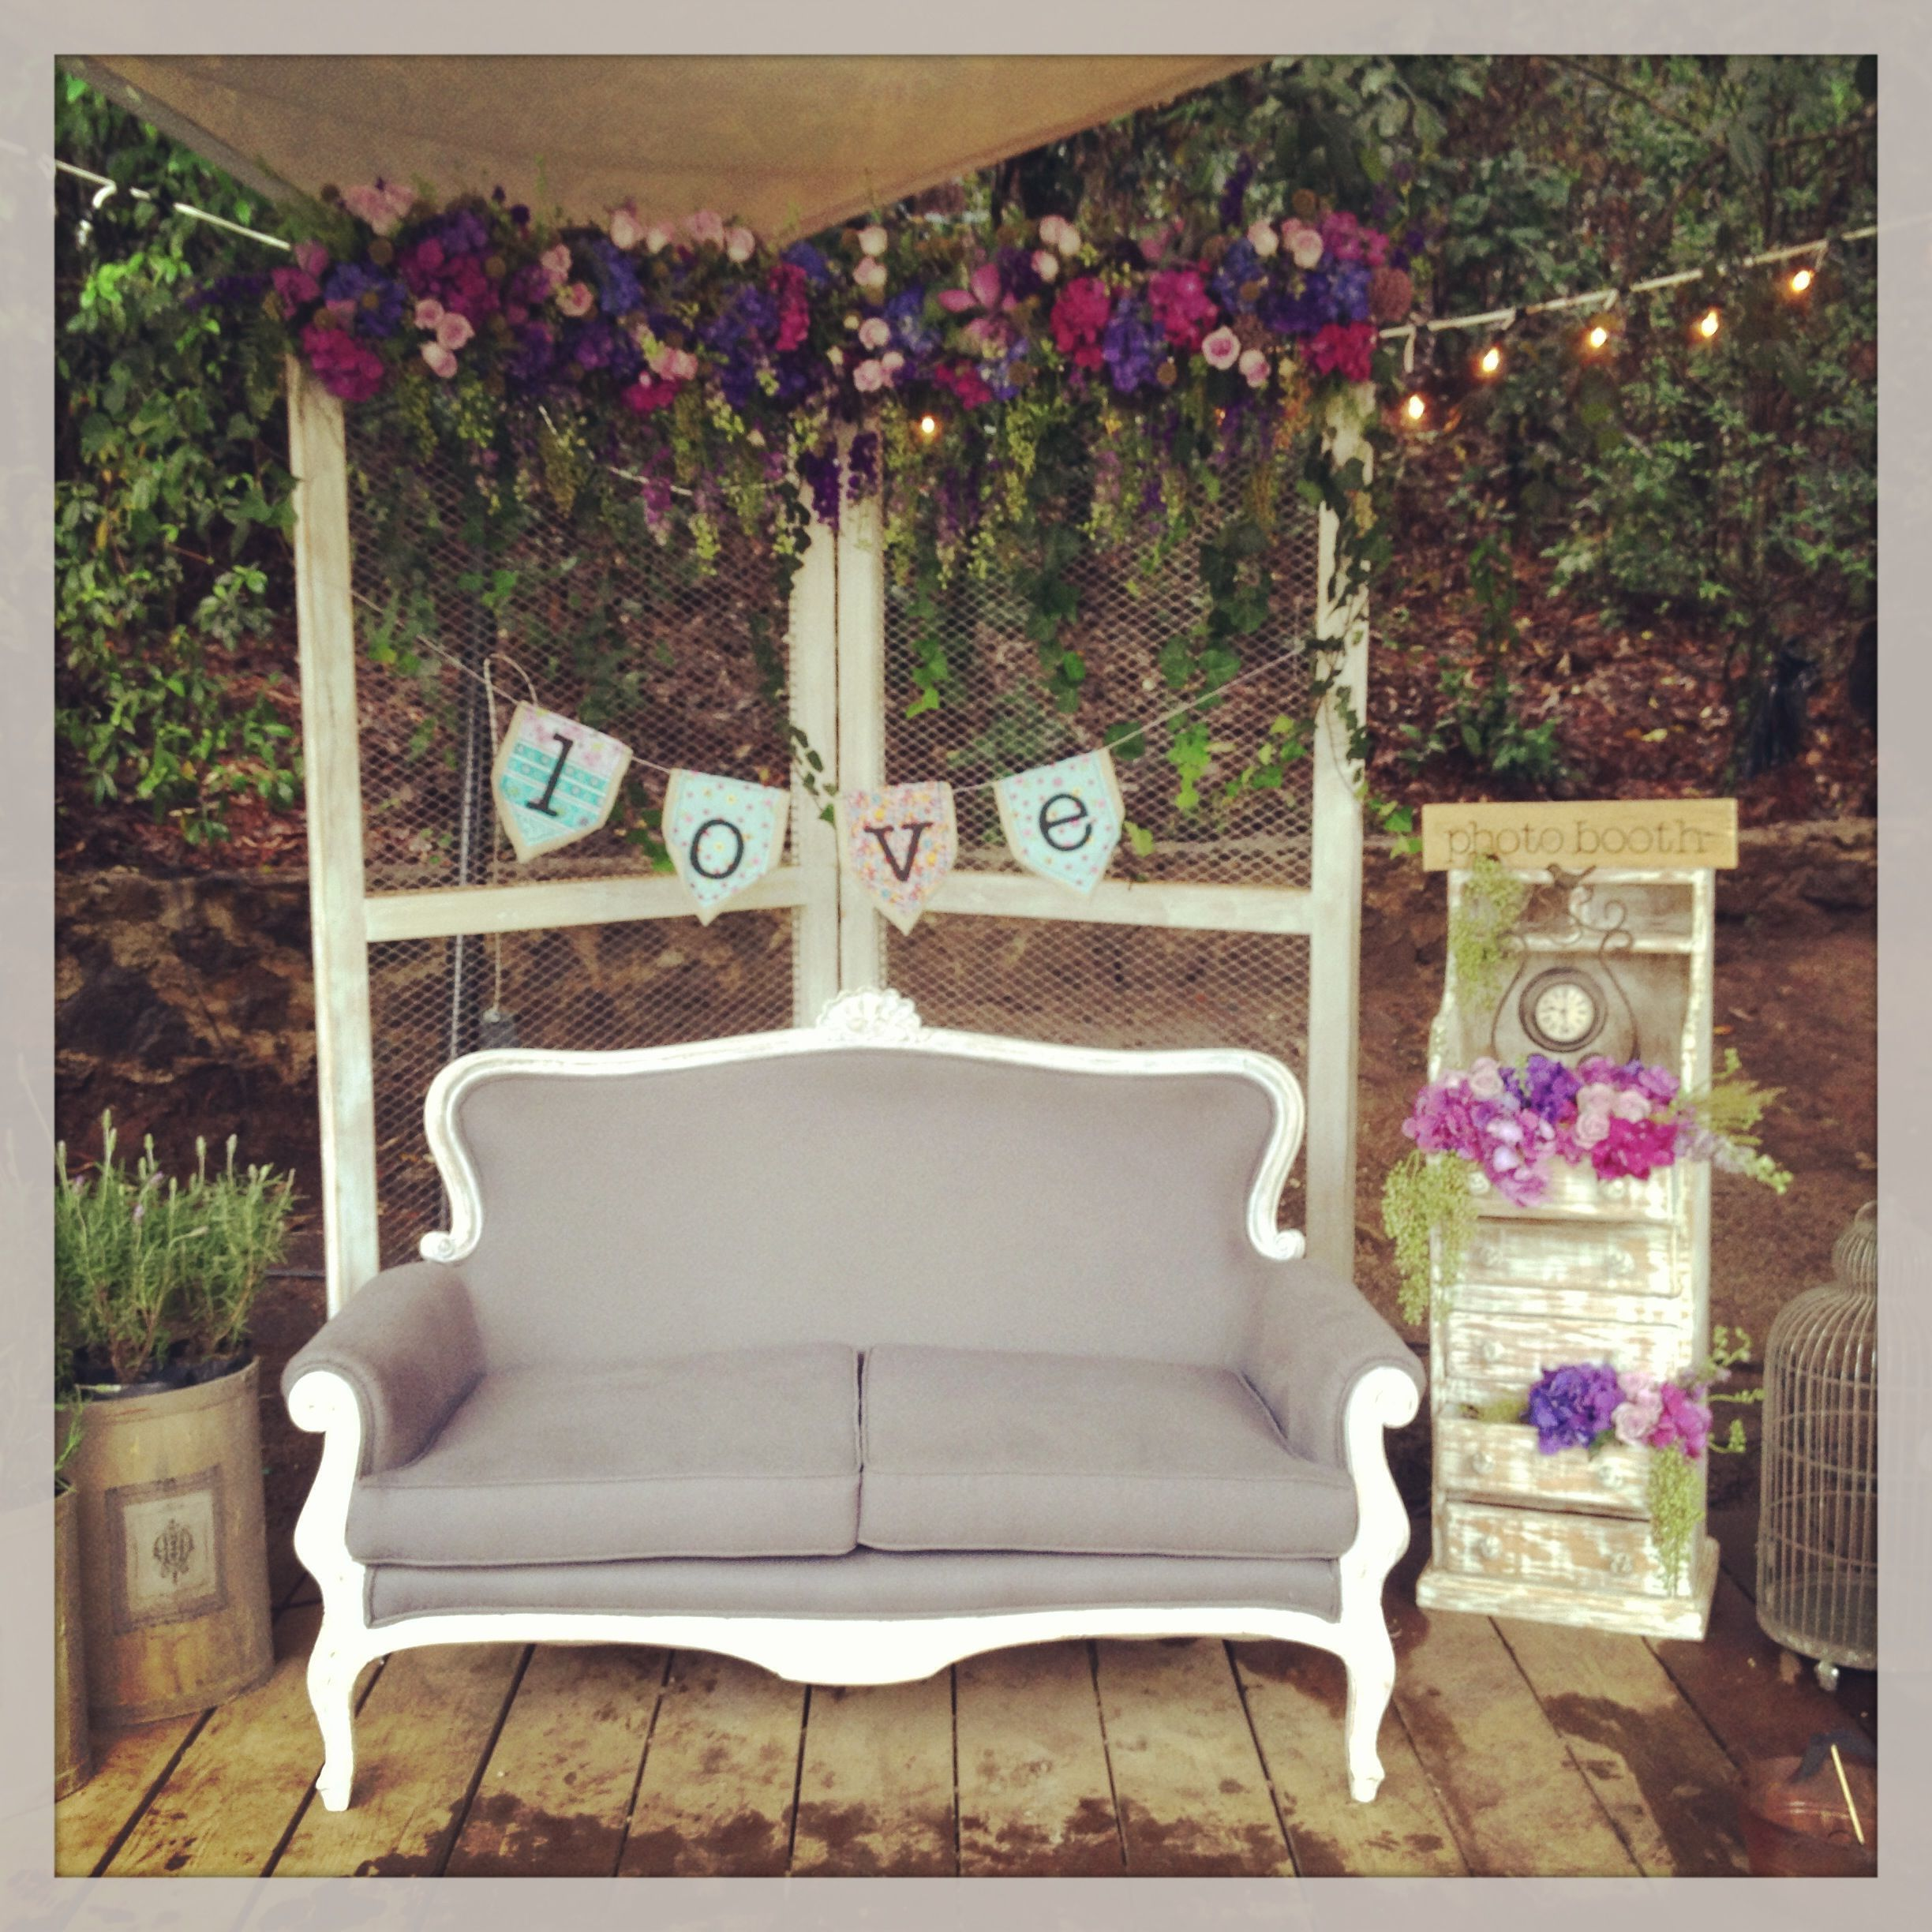 Photobooth Nice Idea For Your Wedding Vintage Flowers